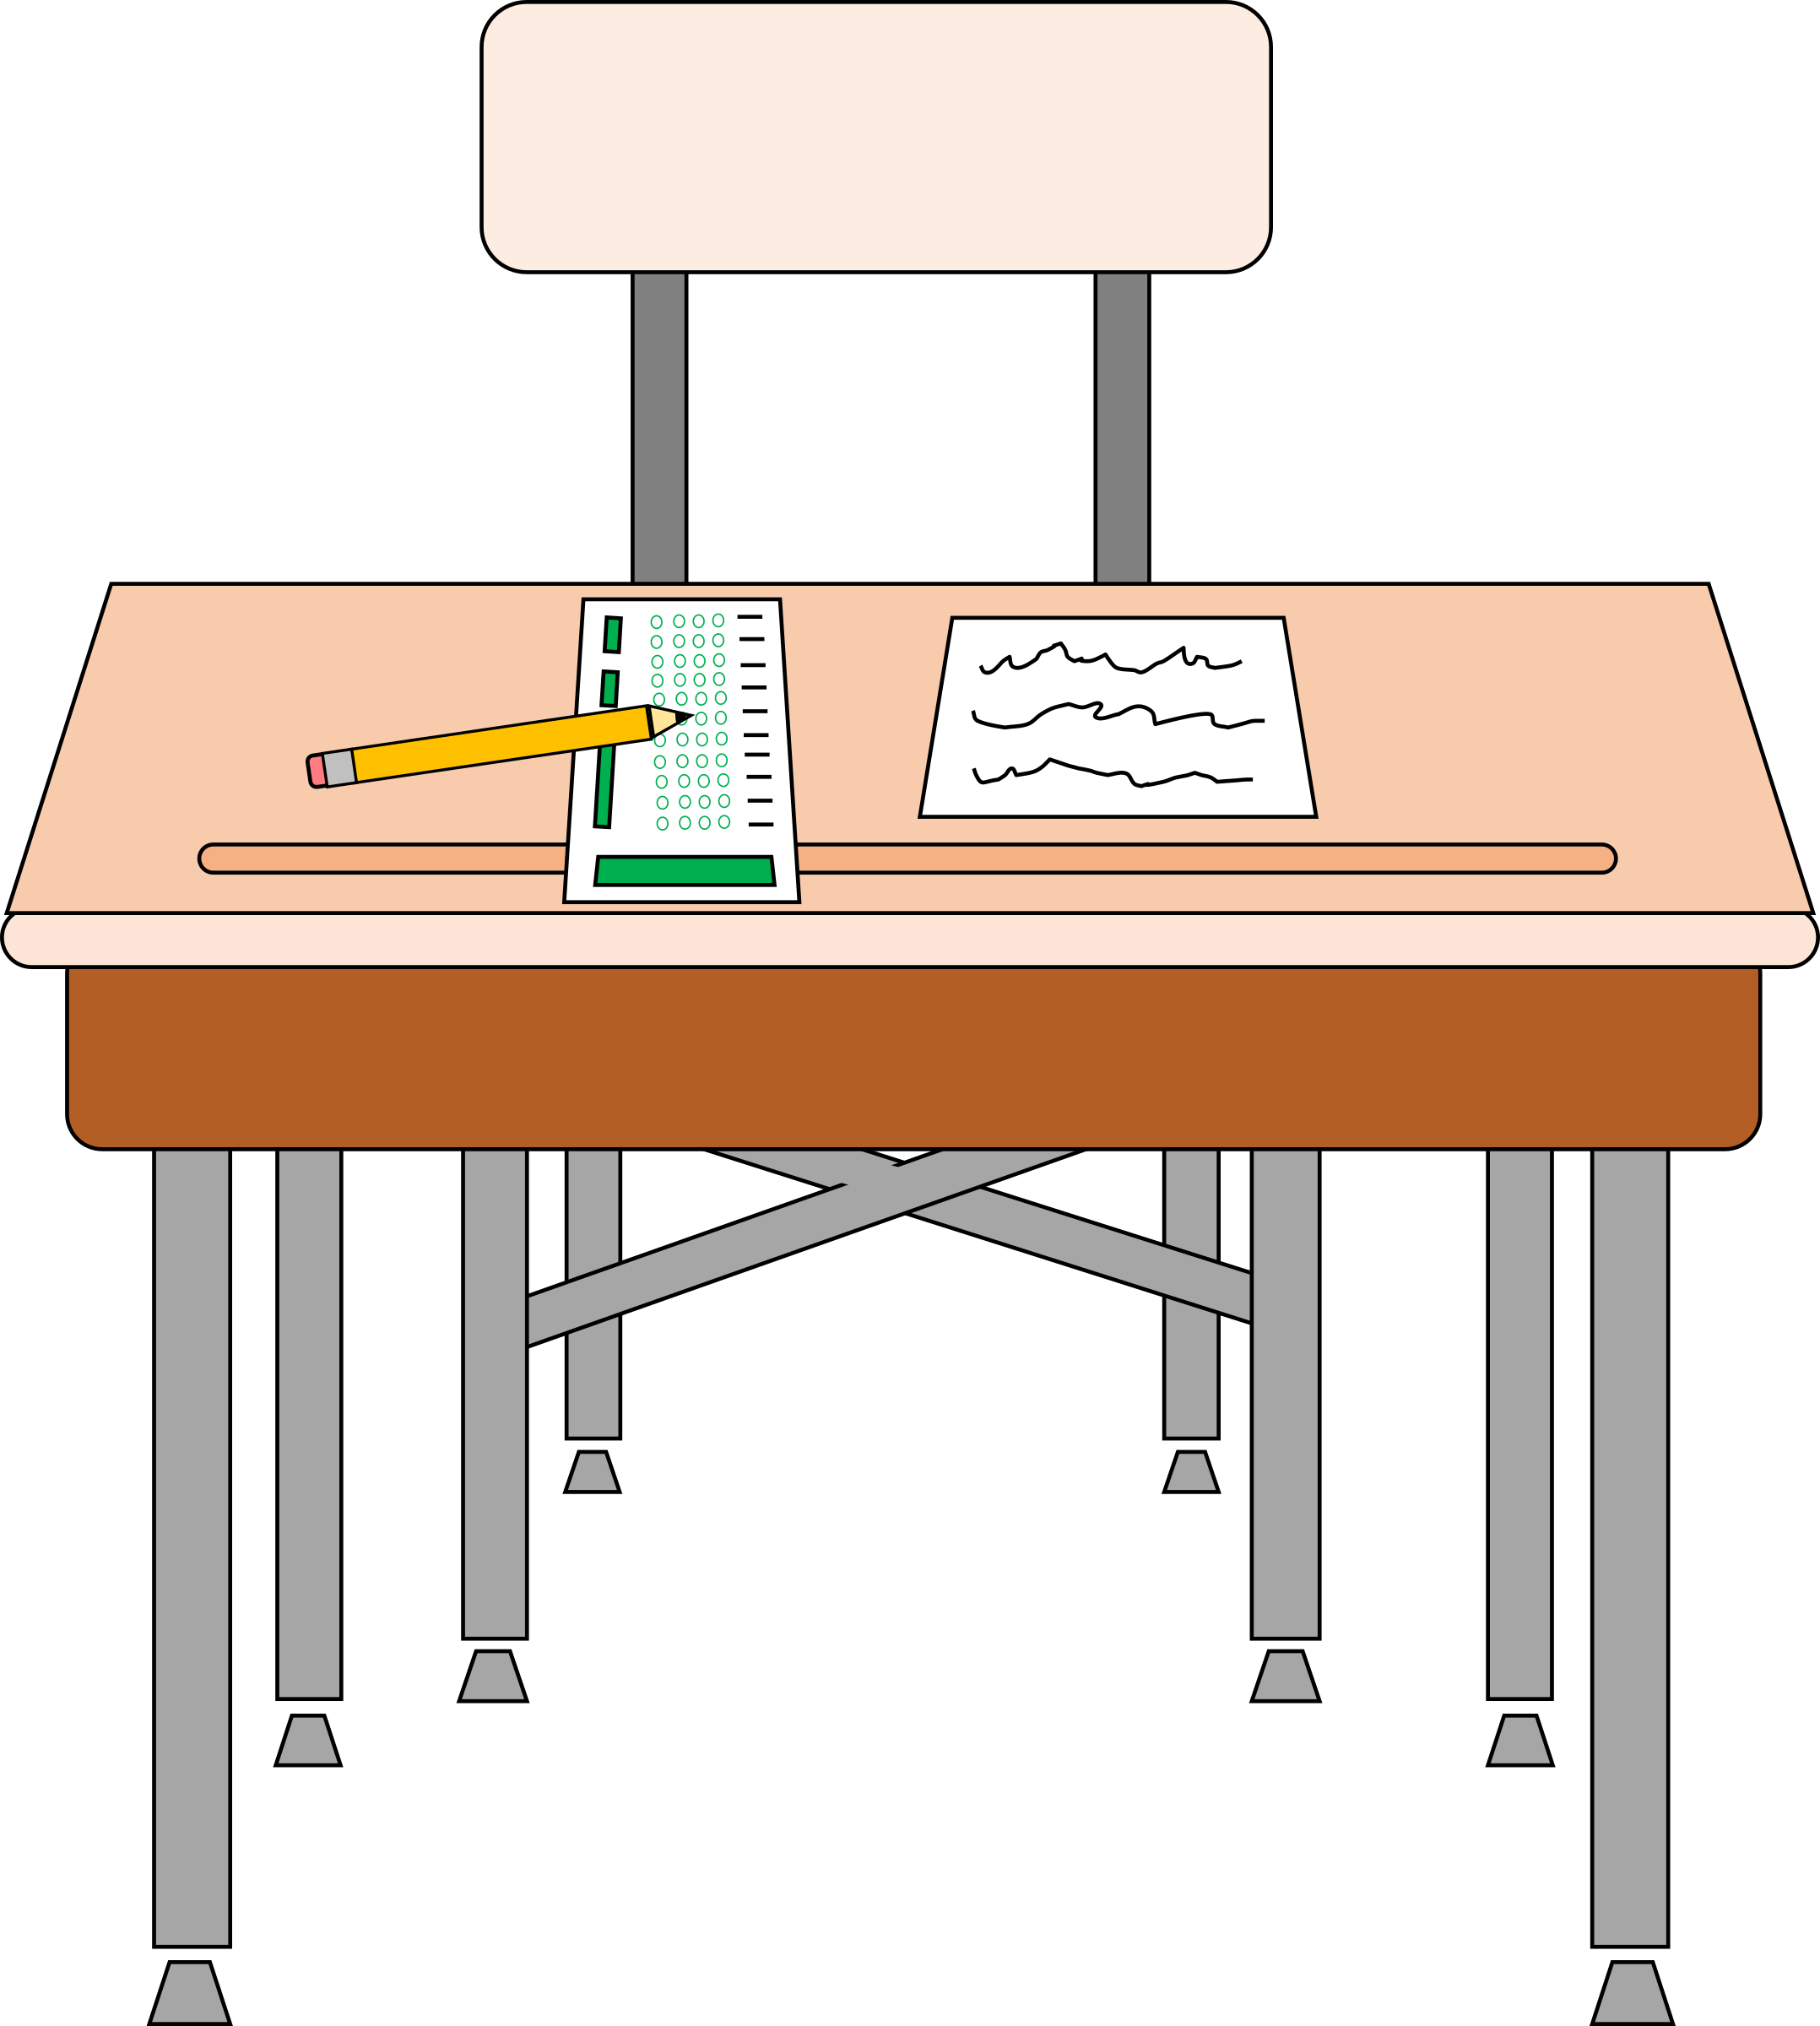 School testing clipart image freeuse Clipart - Empty seat for standardized test image freeuse